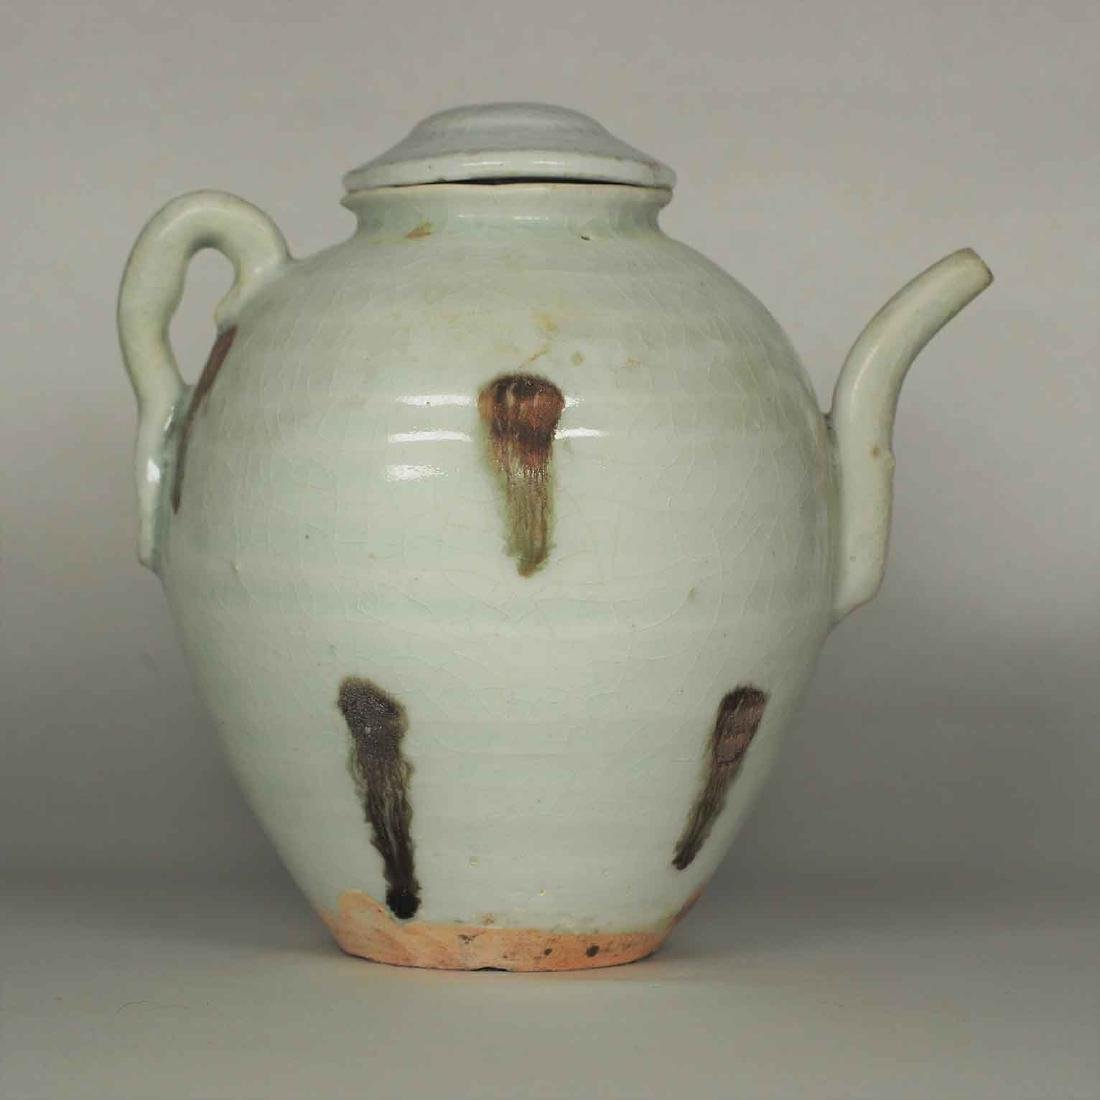 Ewer with Brown Spot, Yuan Dynasty